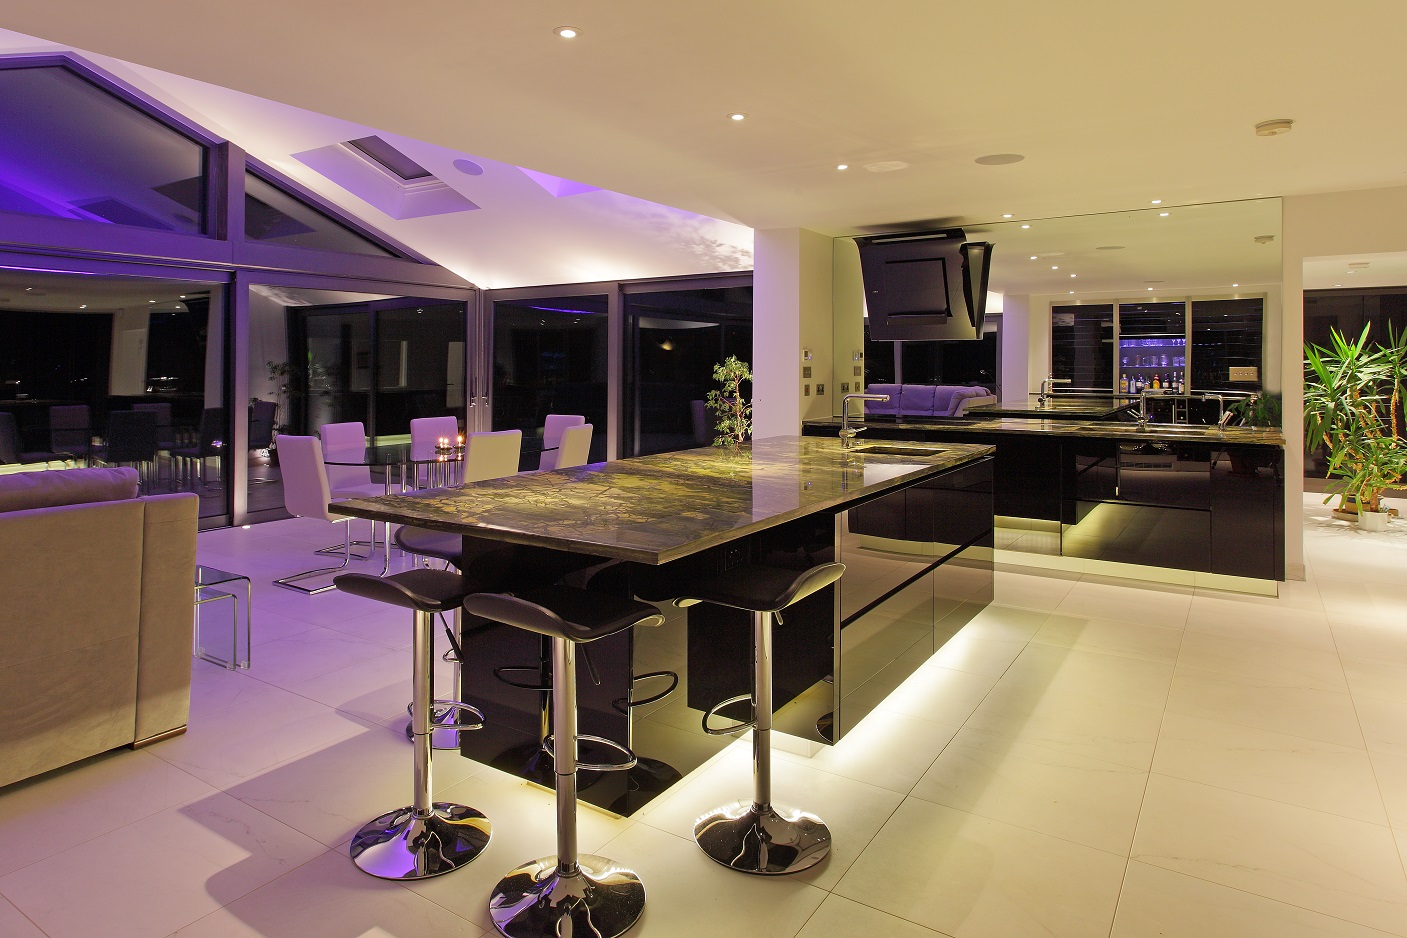 The true glory of the kitchen lighting scheme comes out at night.